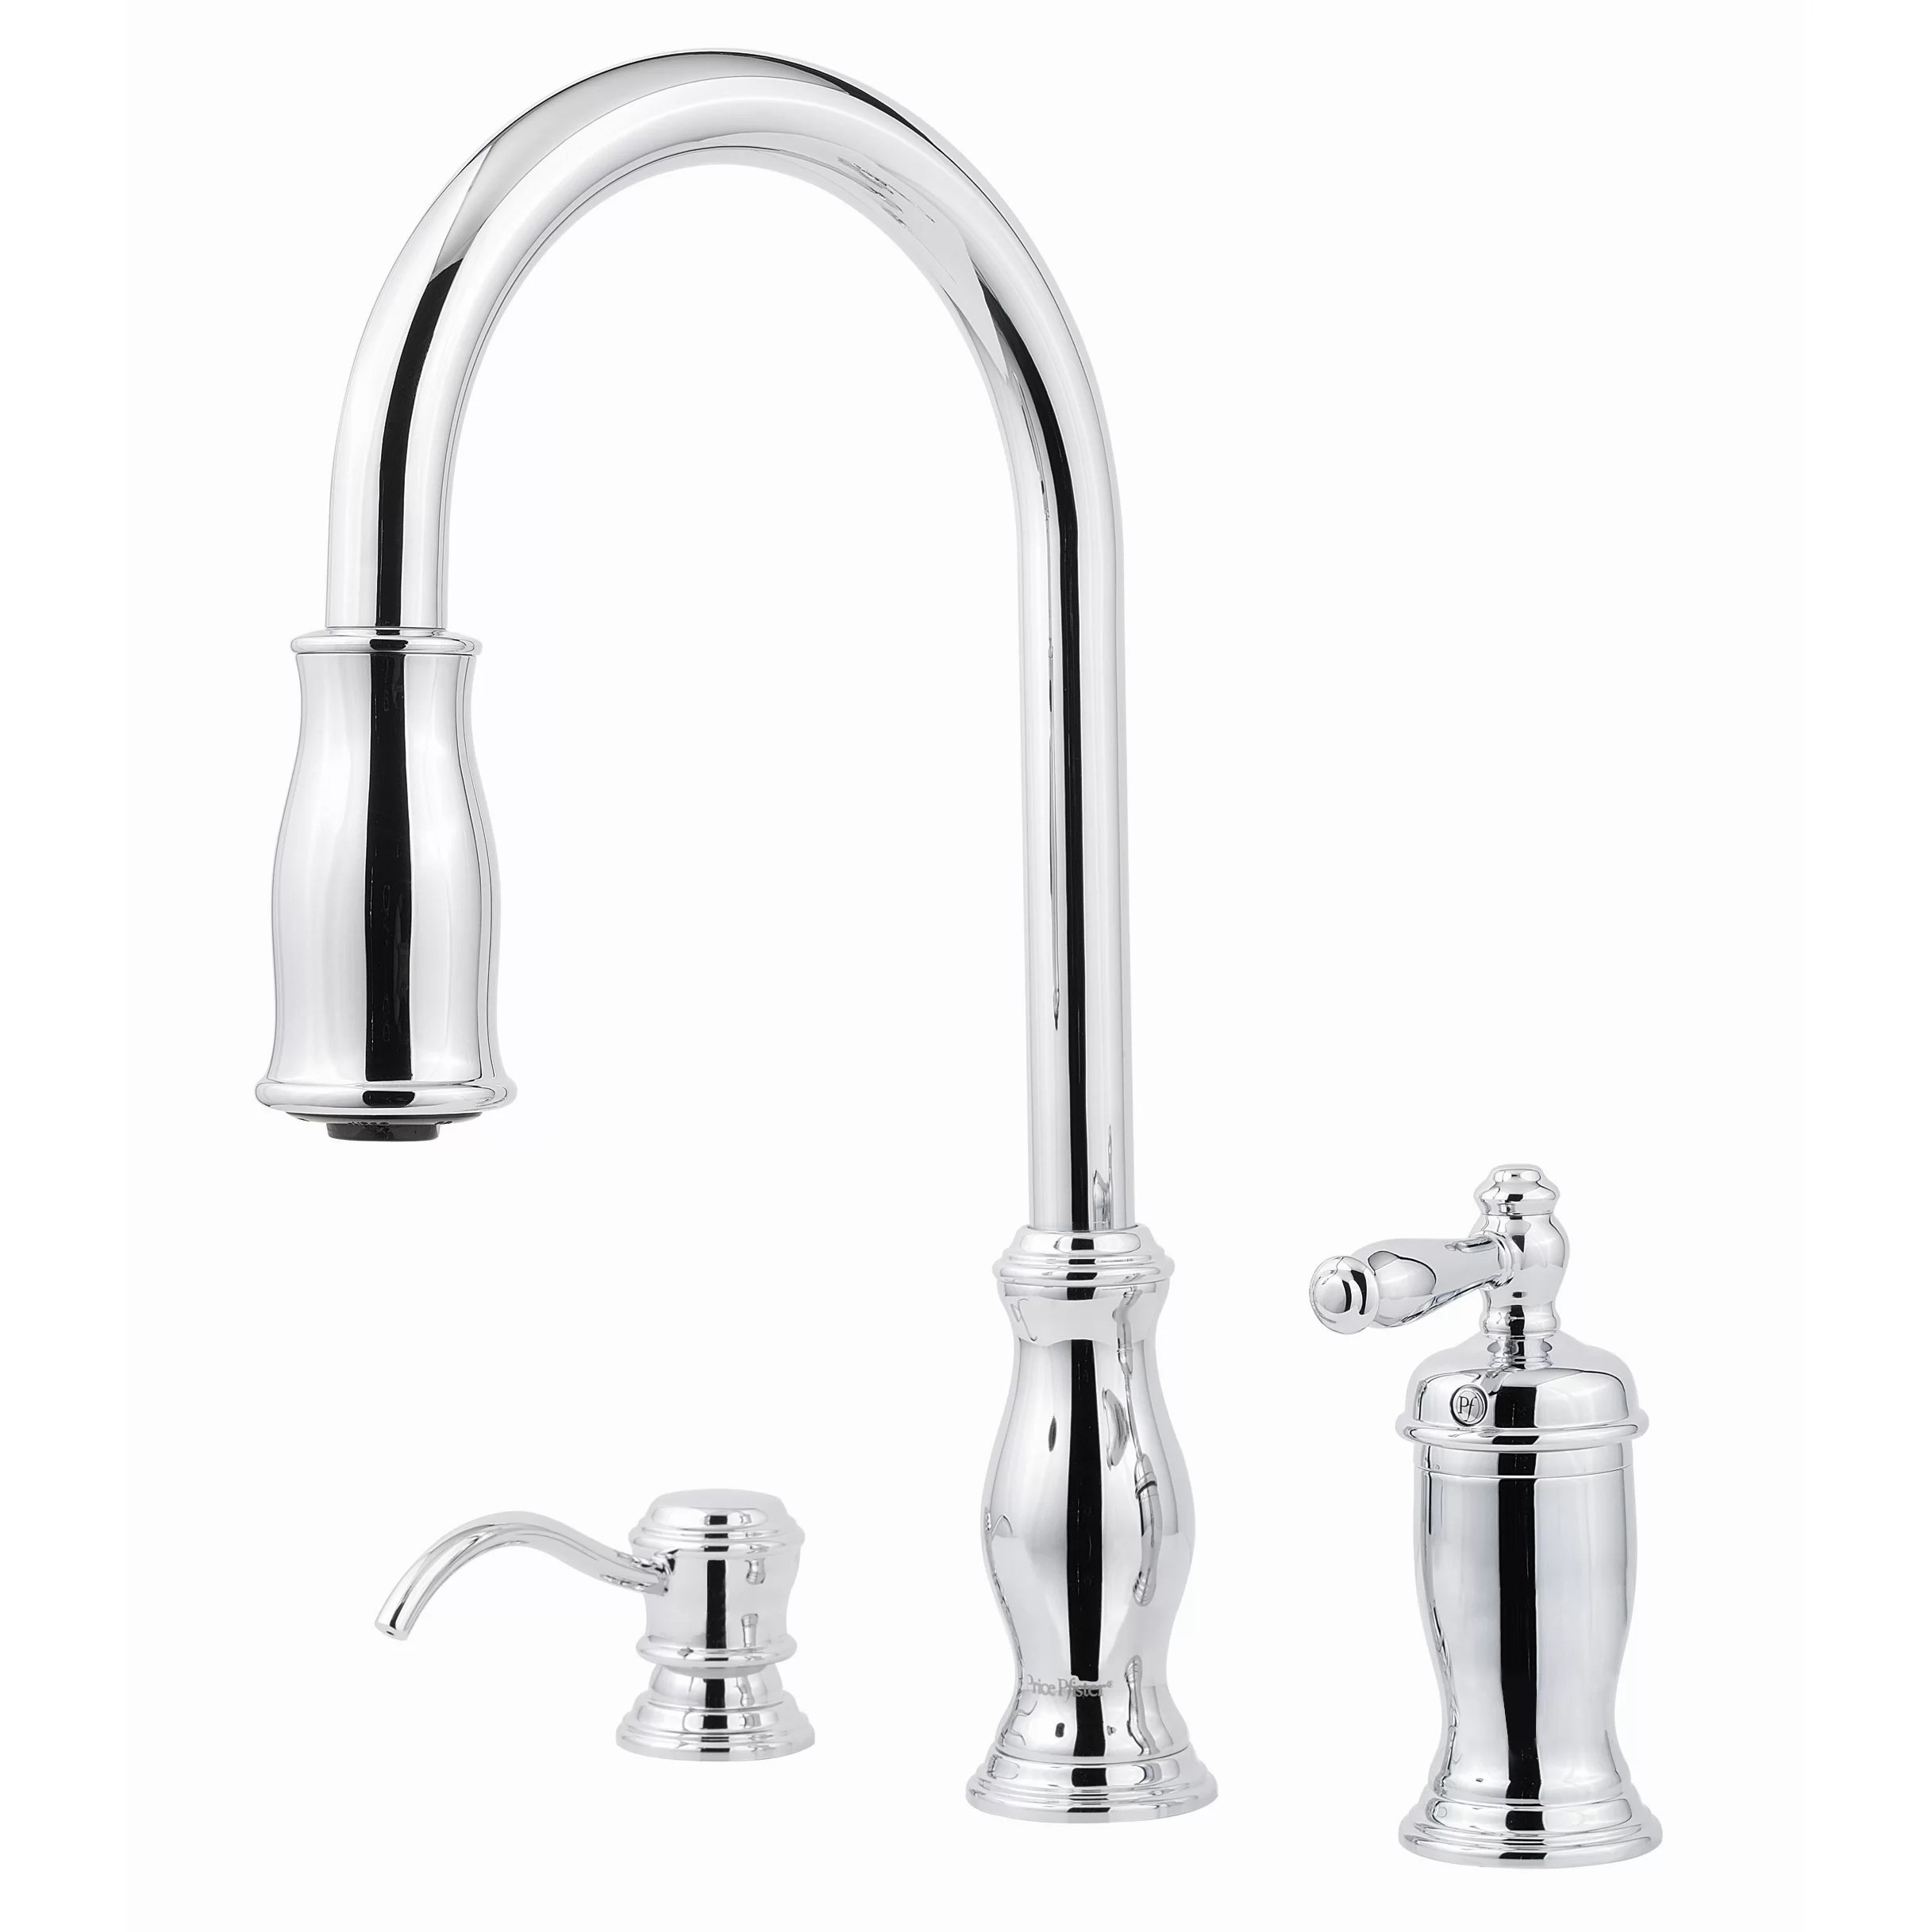 kitchen faucets marielle the interior price dripping moen home removal faucet design arbor of entity pfister magnificent depot